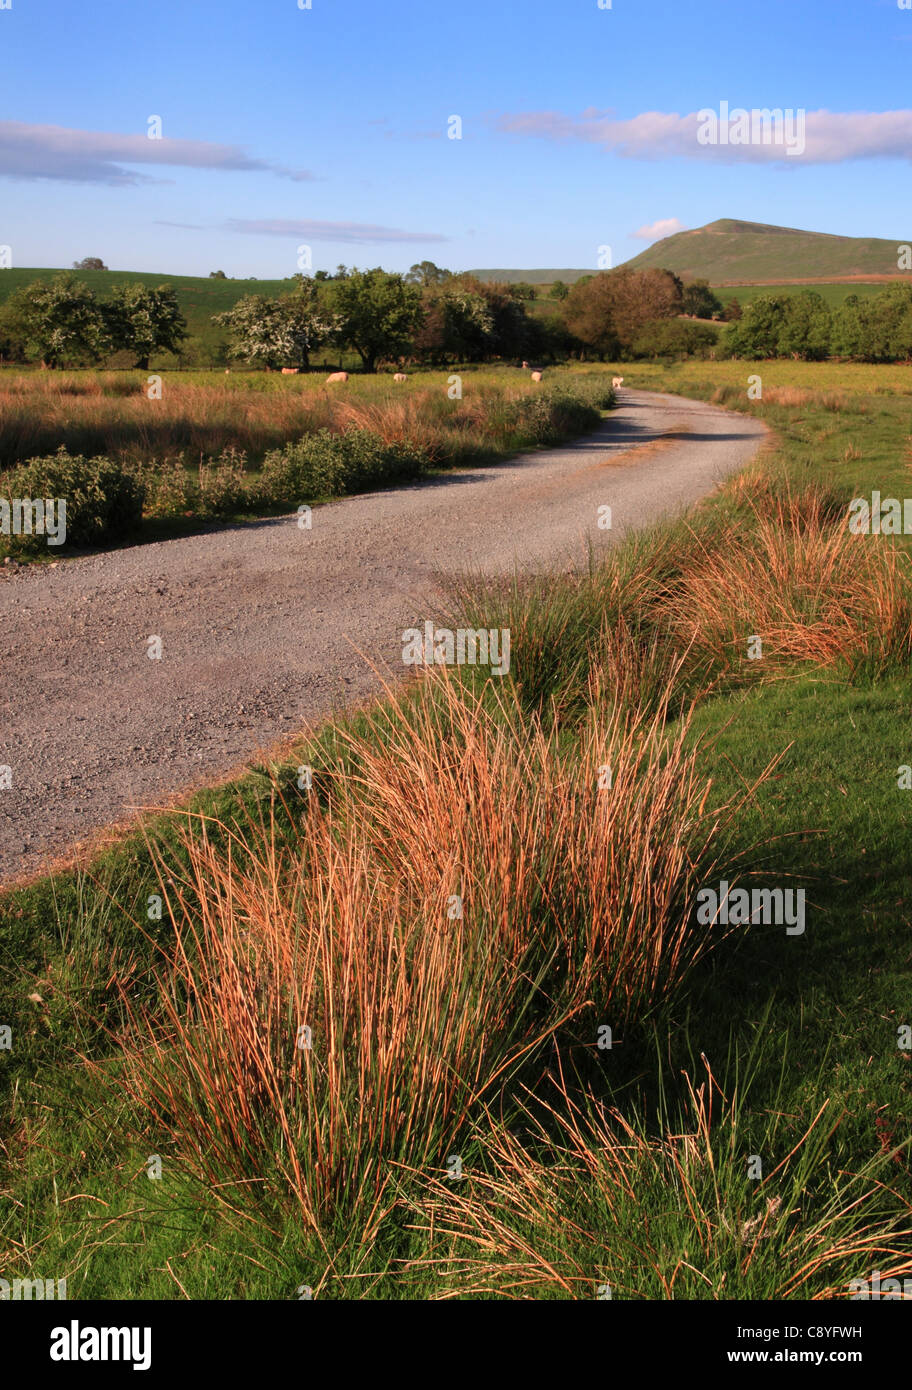 Rhos Fach Common with the Black Mountains in the distance, Brecon Beacon's National Park, Powys, Wales, Europe - Stock Image